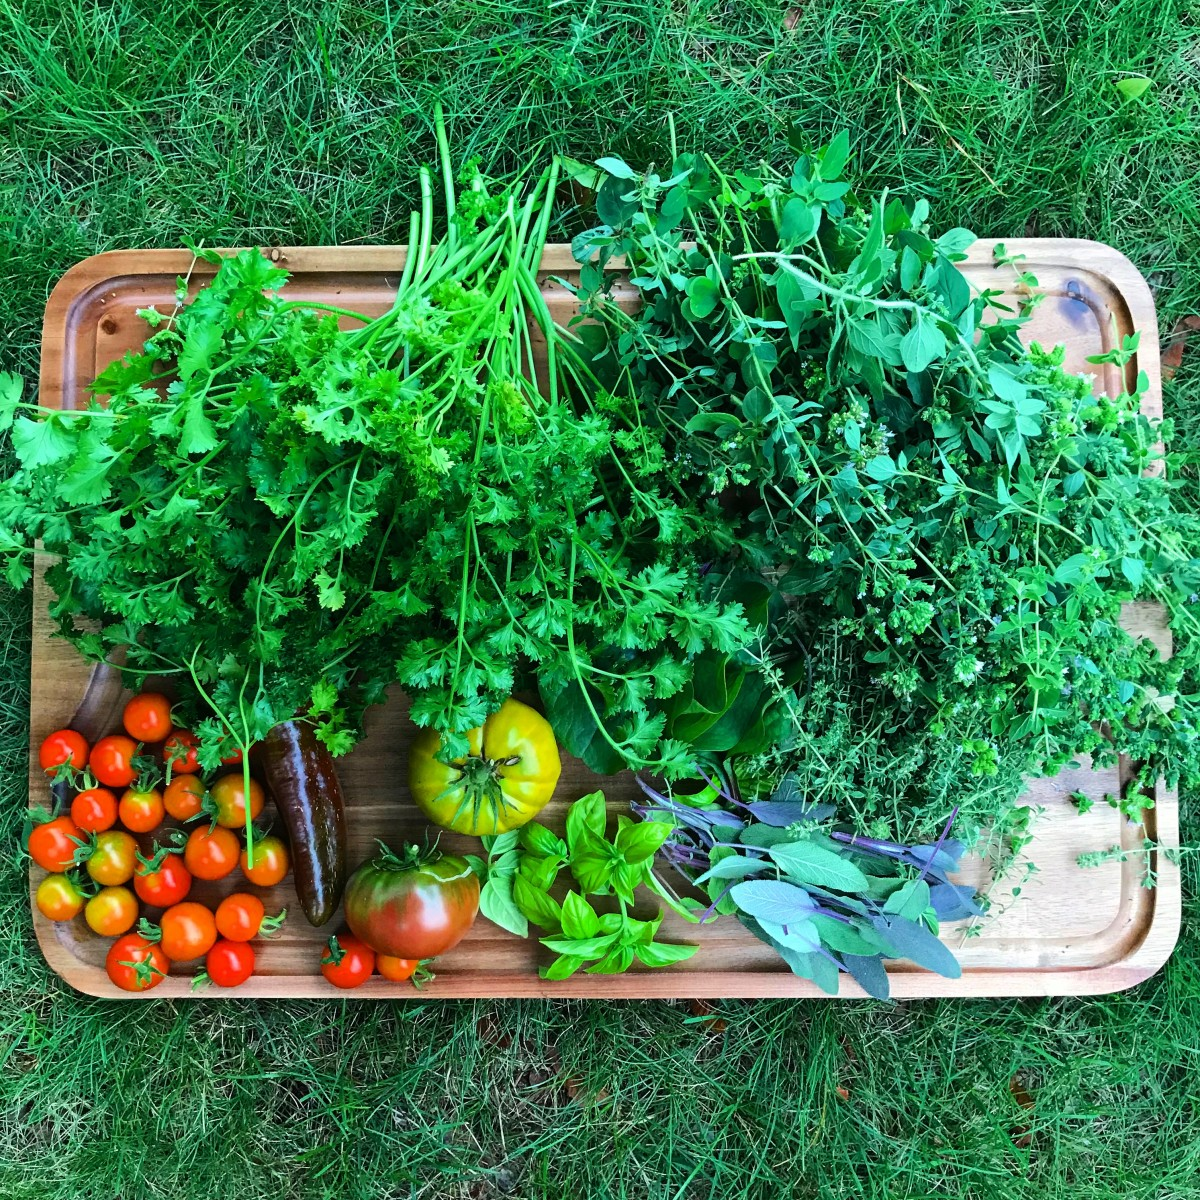 How to Dry Herbs From the Garden